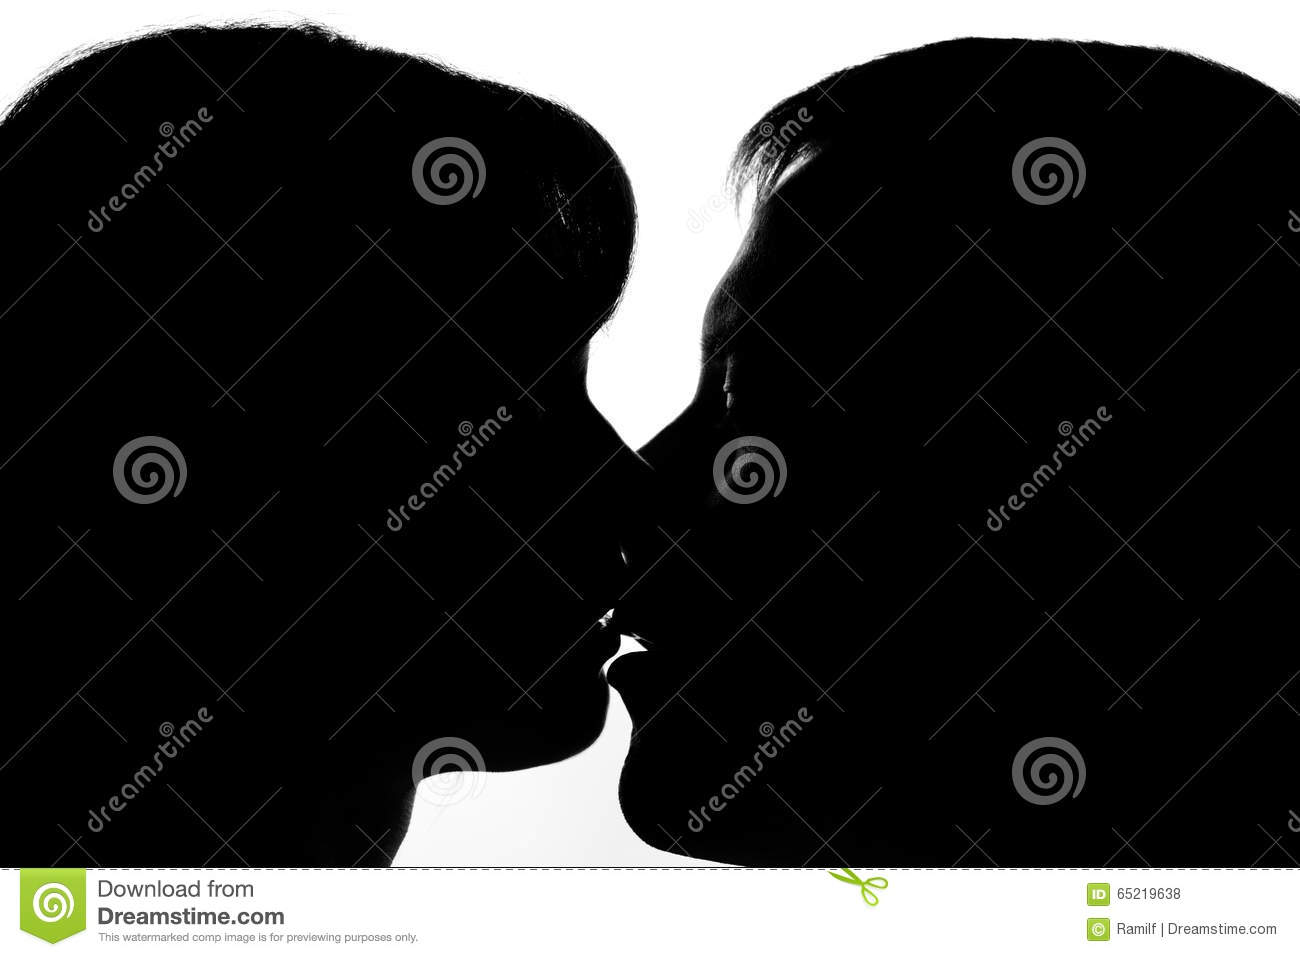 Black and white silhouettes of couples in love during a kiss